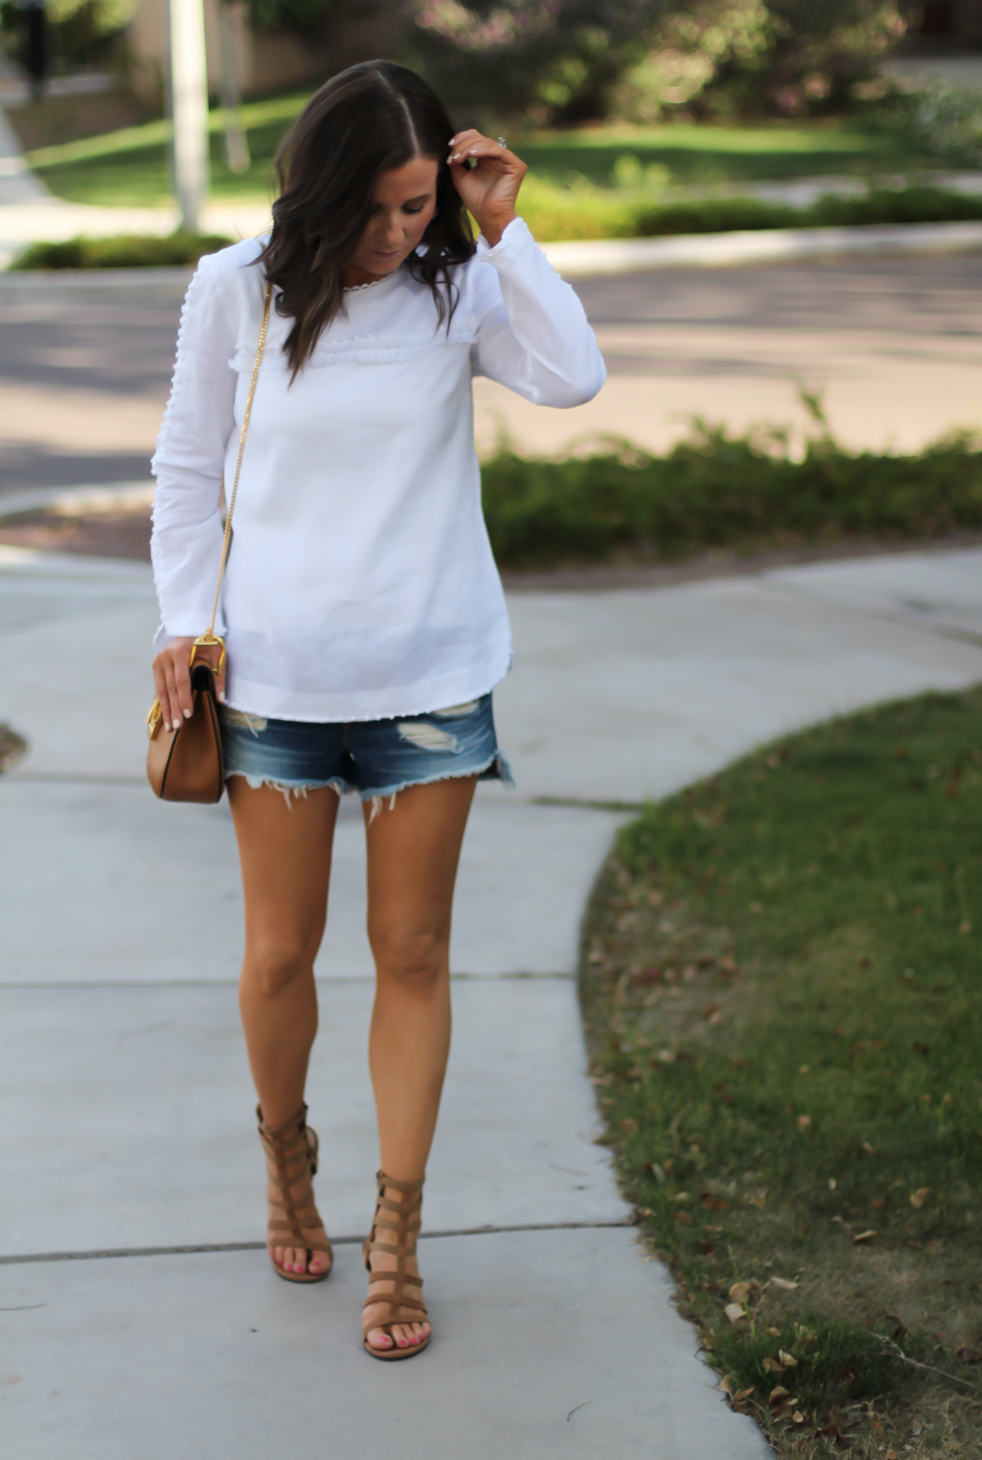 Denim Cutoff Jean Shorts, White Linen Blouse, Gladiator Wedge Sandals, Chain Strap Leather Crossbody Bag, Rag and Bone, J.Crew, Stuart Weitzman, Chloe 11